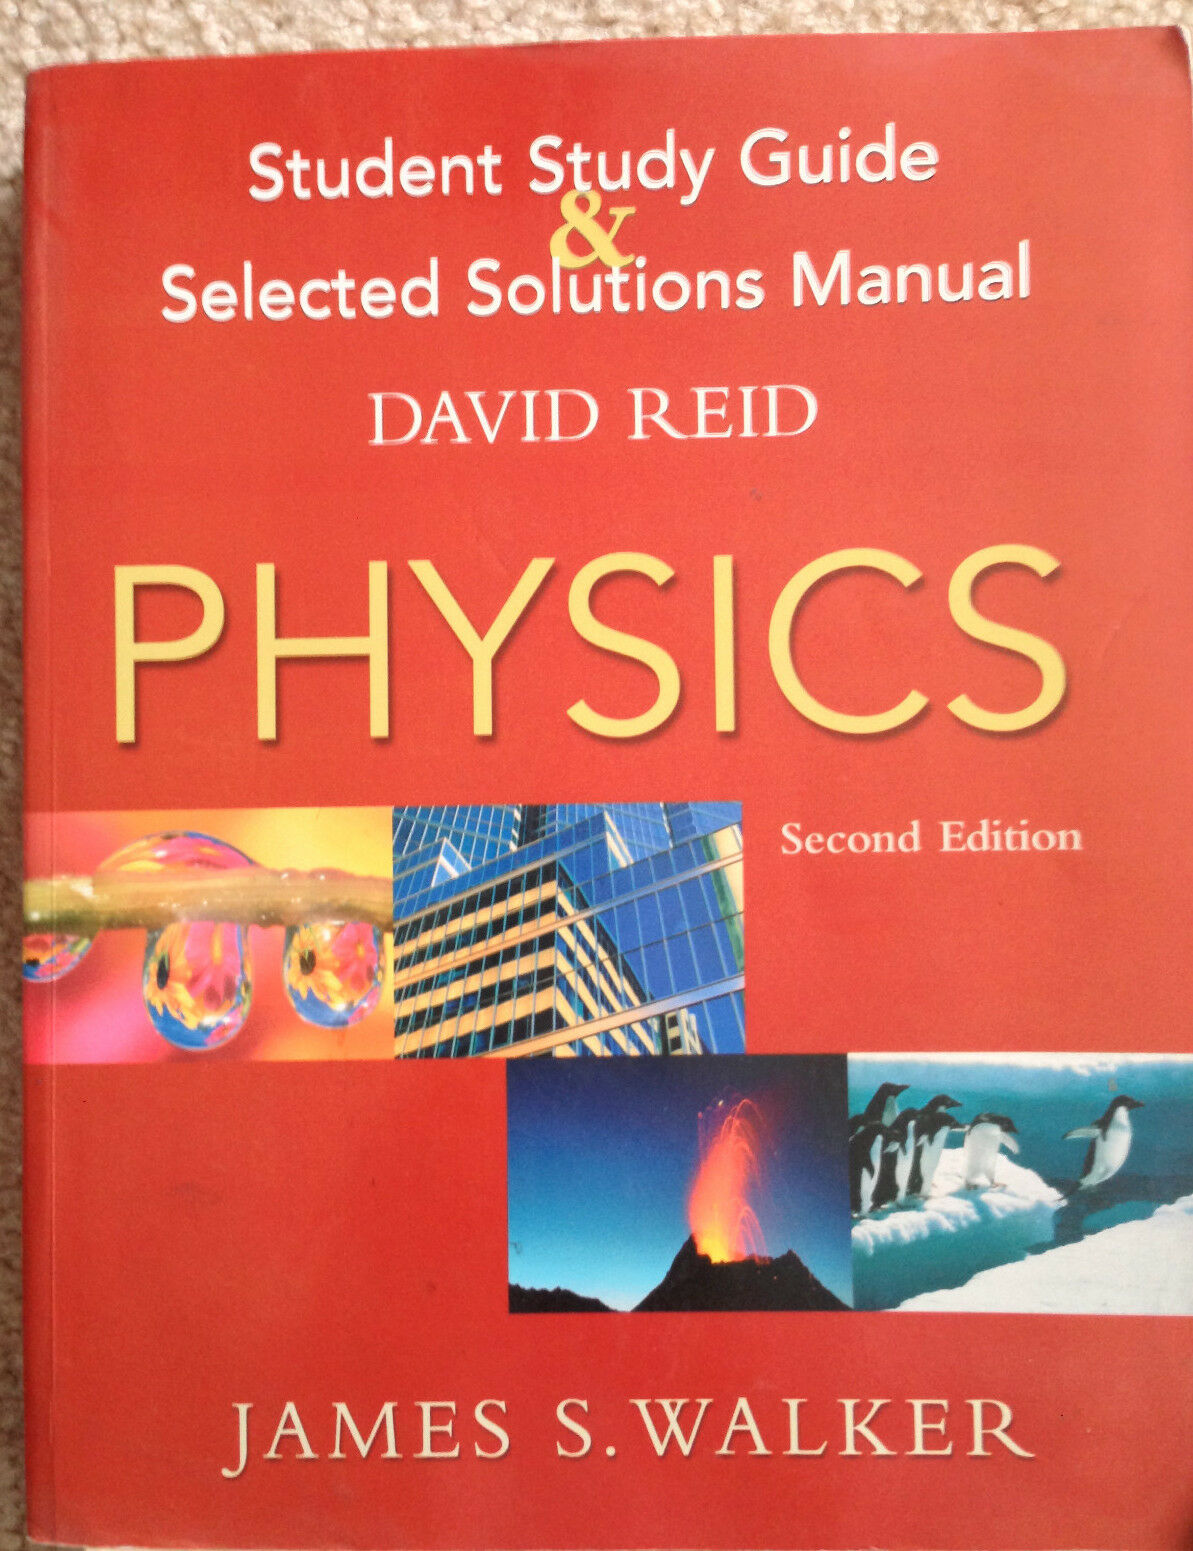 Physics Student Study Guide and Selected Solutions Manual by David Reid and  James S. Walker (2003, Paperback) | eBay